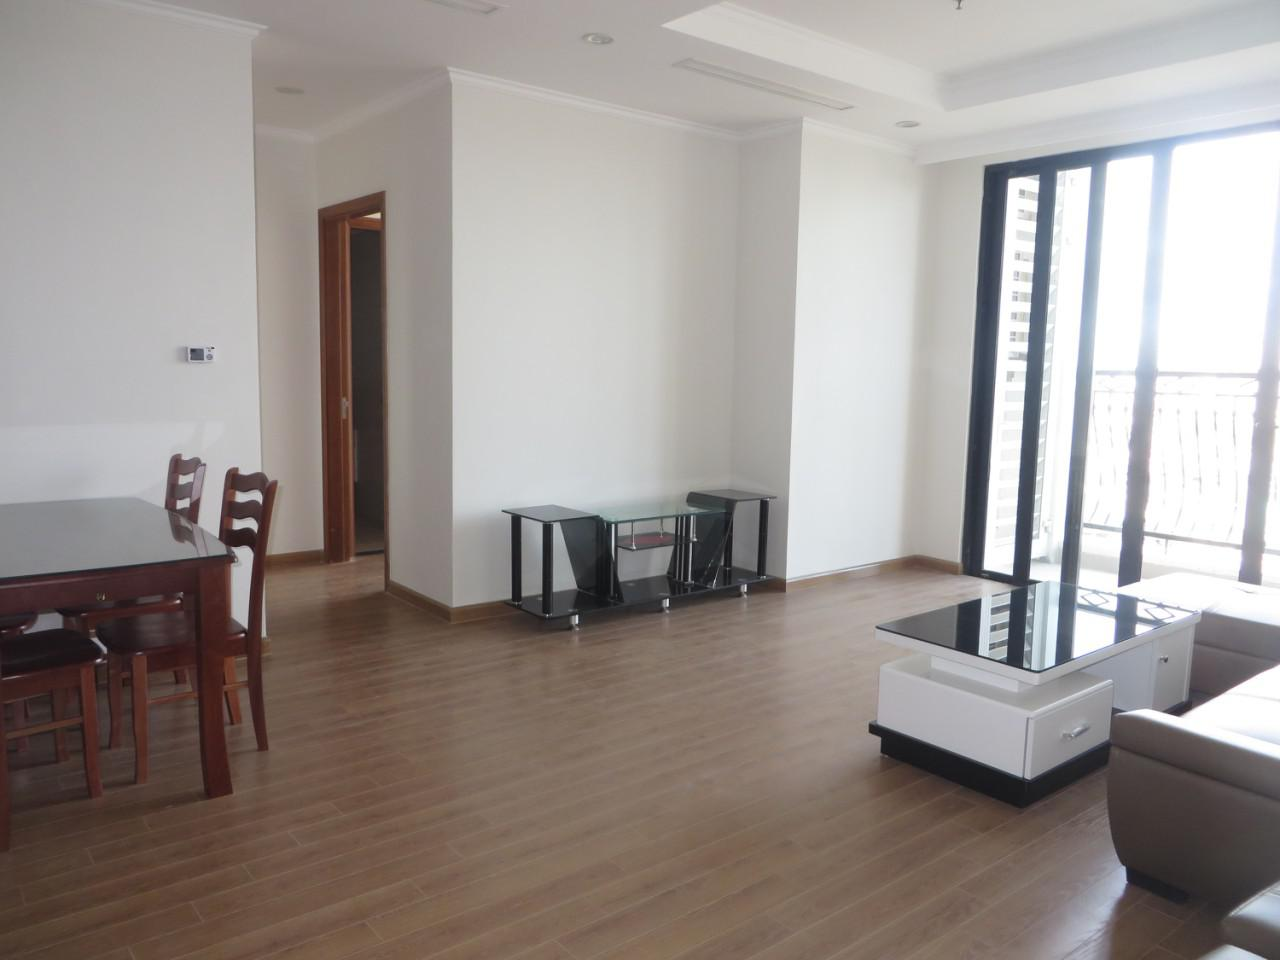 3 Bedroom Apartment for rent in R6